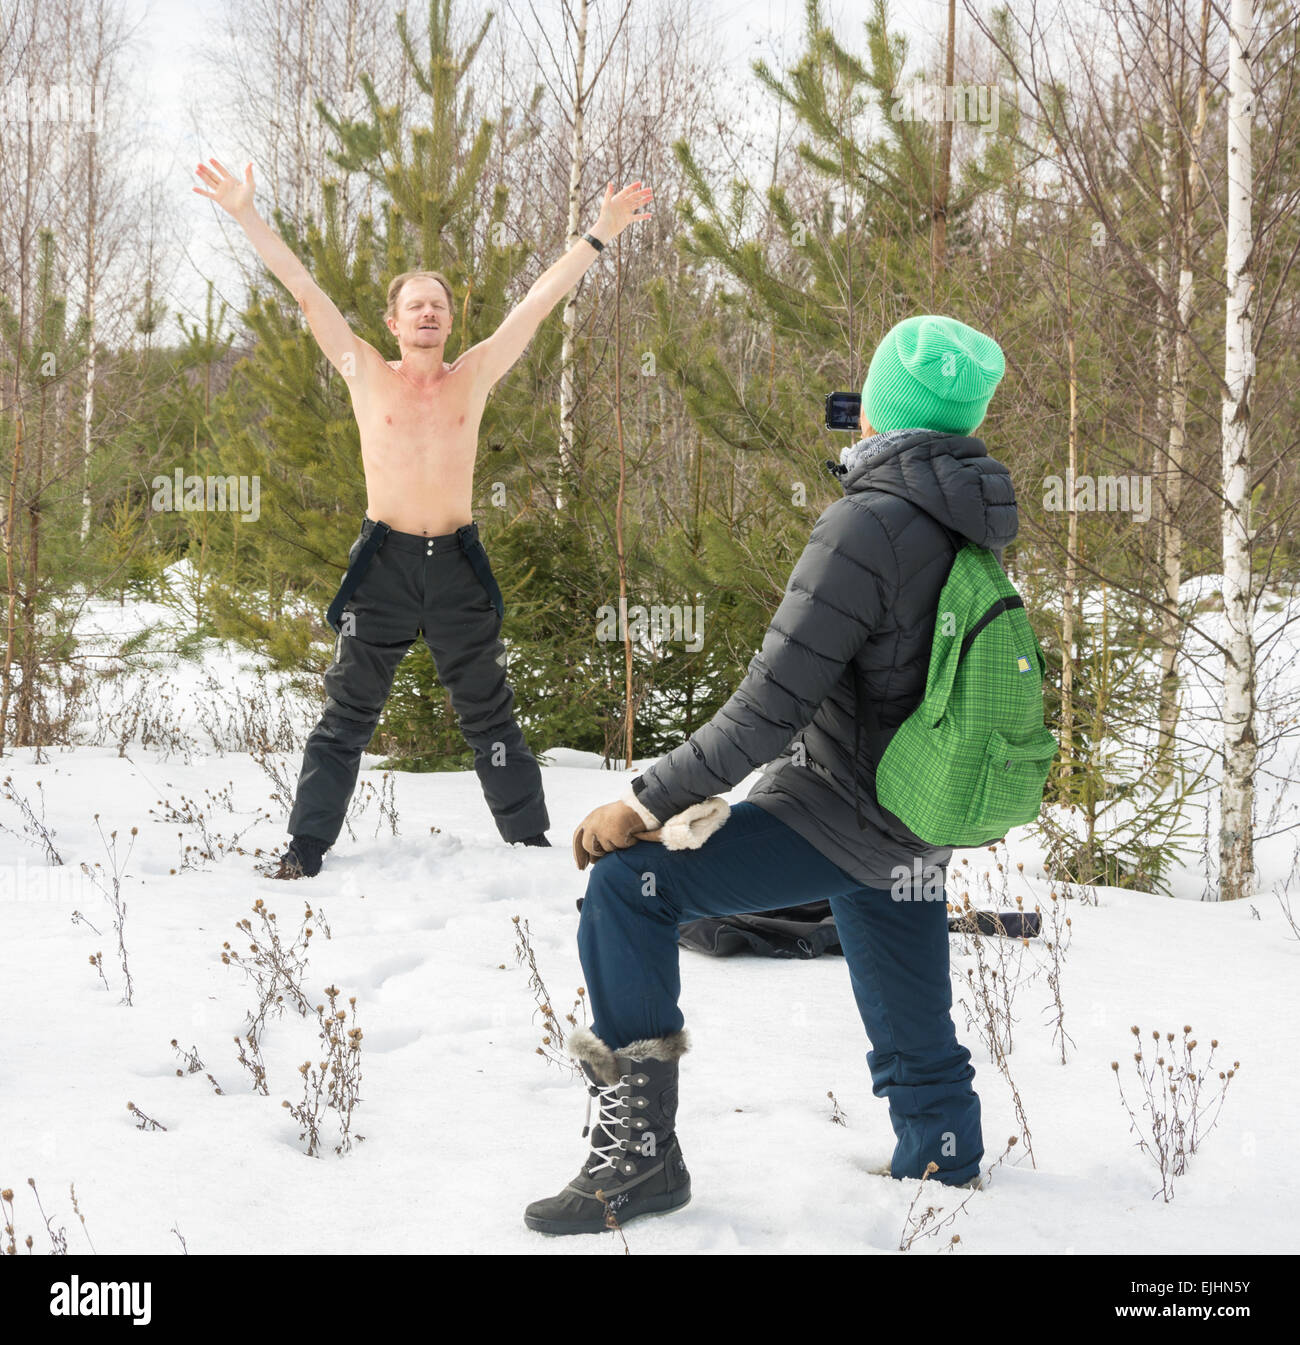 Young man, stripped to the waist, standing on snow and posing for the photographer. - Stock Image